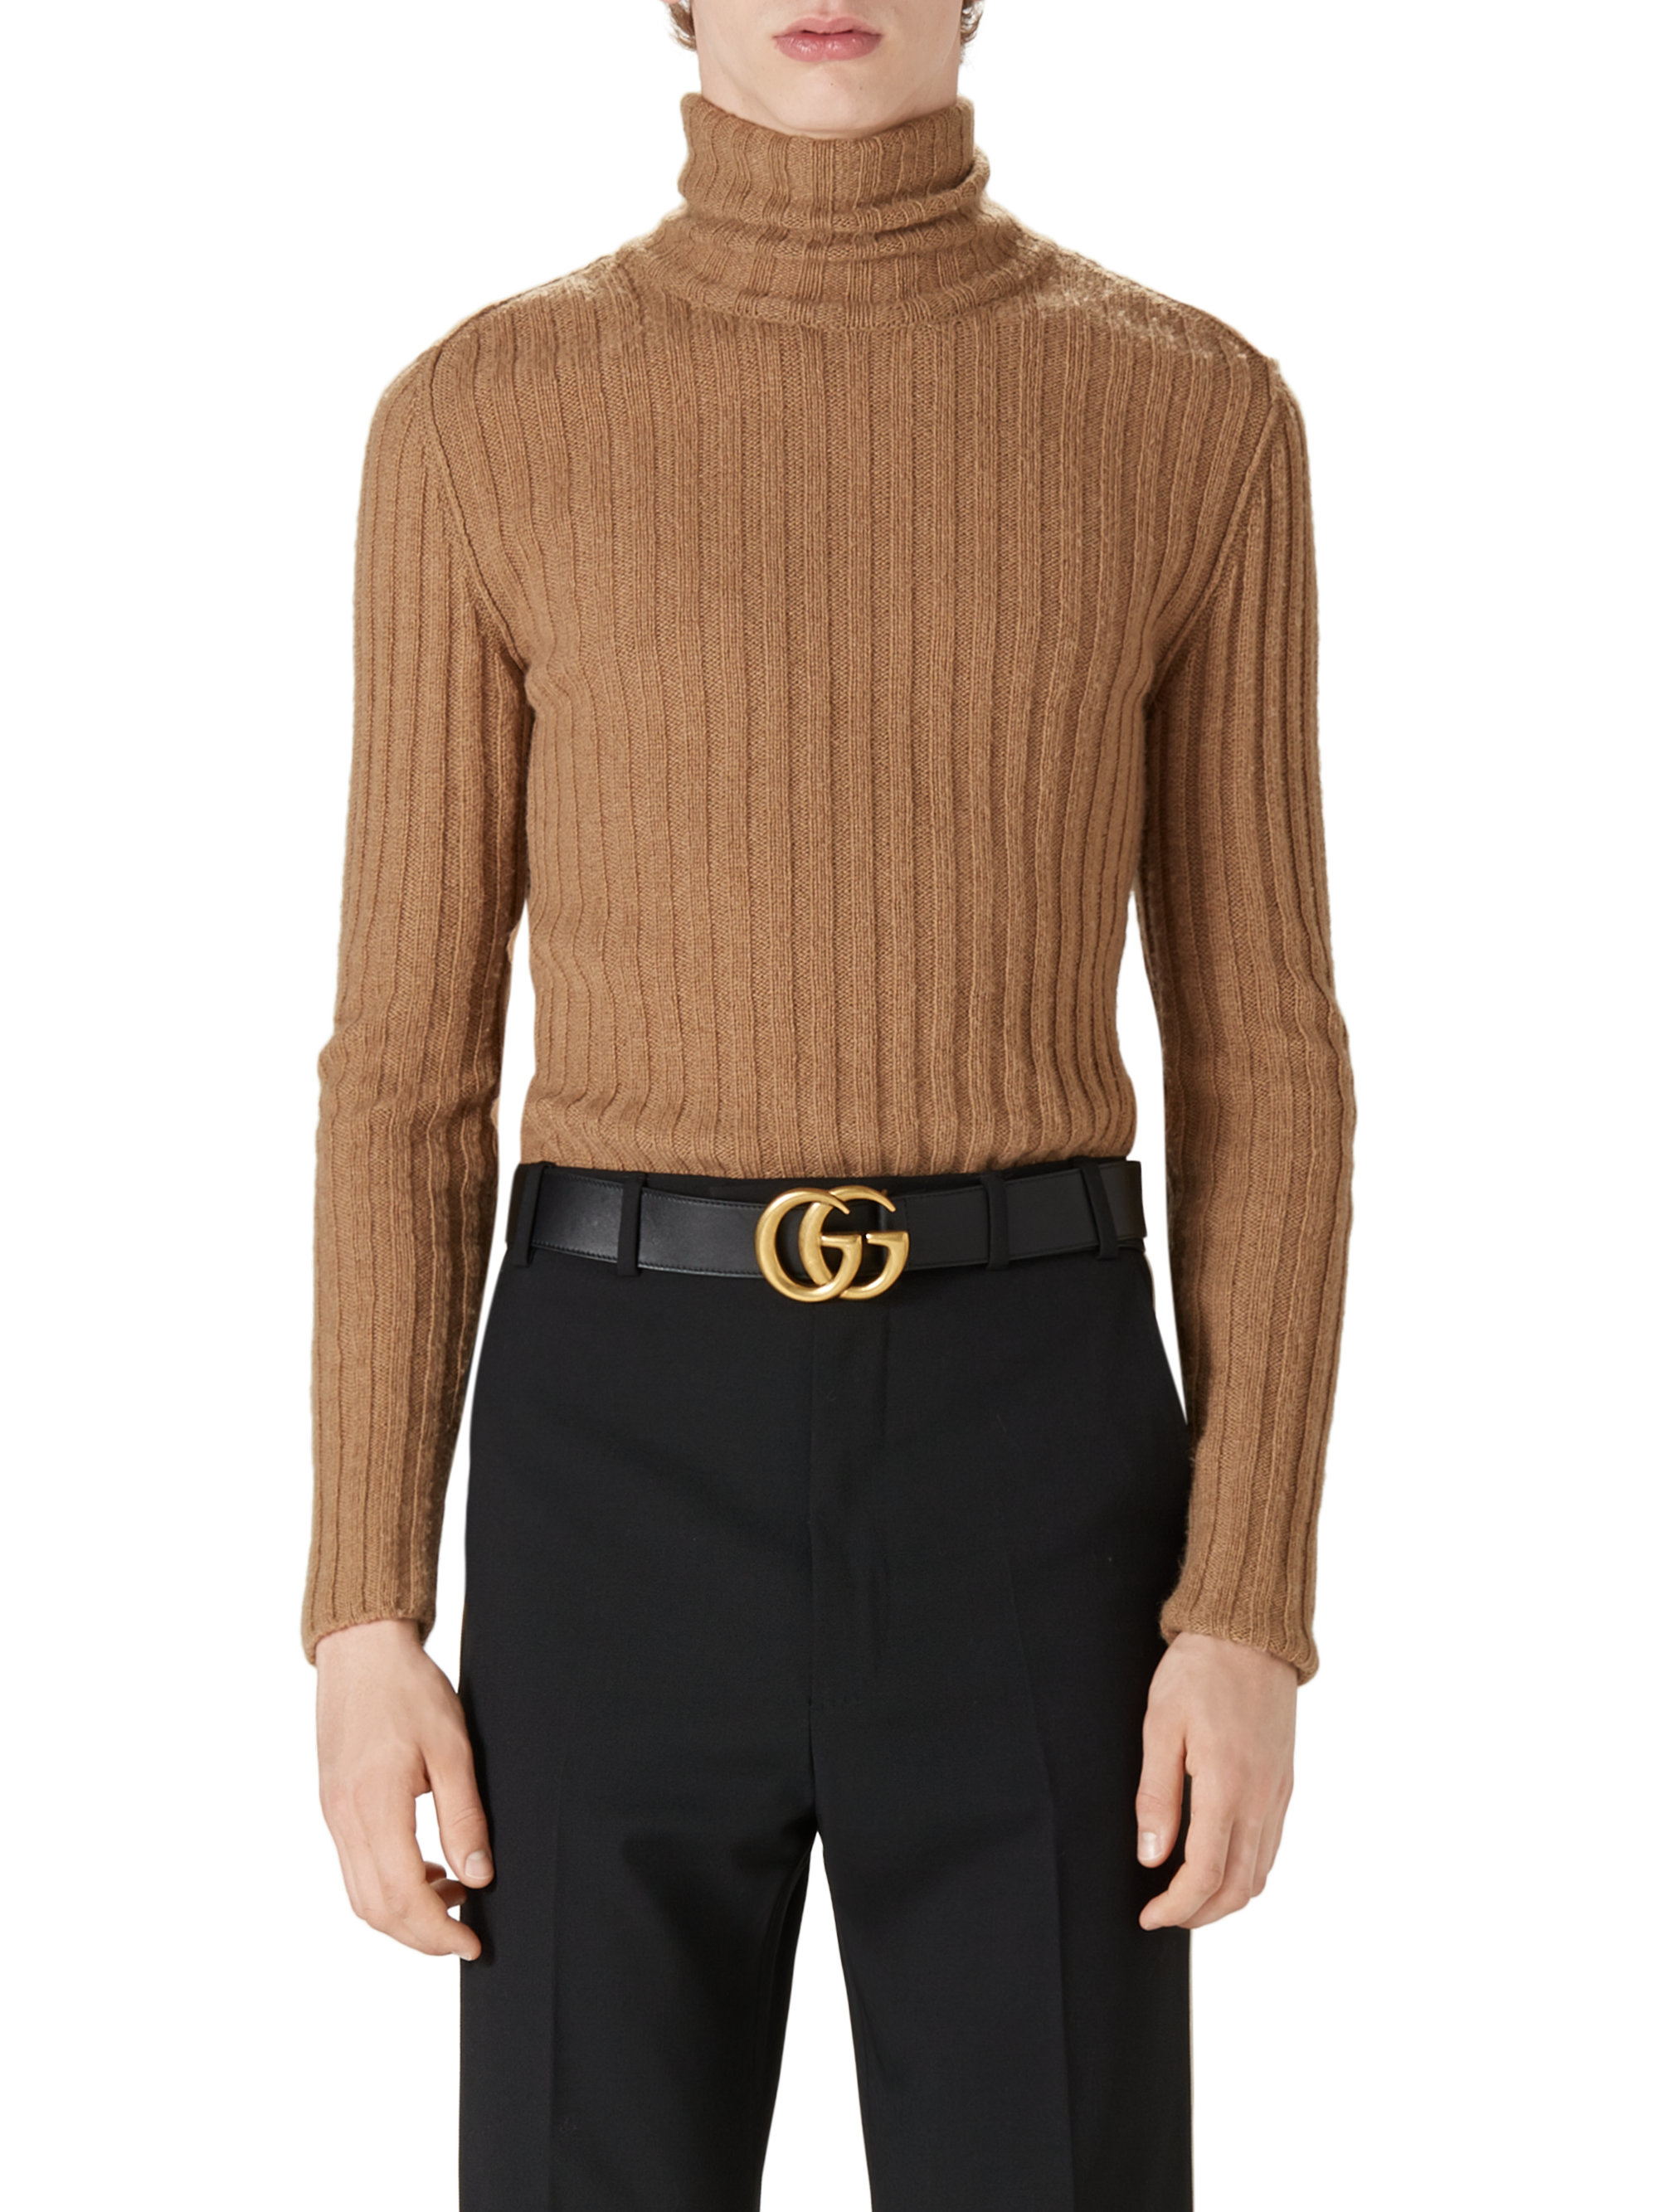 Lyst Gucci Camel Hair Ribbed Turtleneck Sweater In Natural For Men